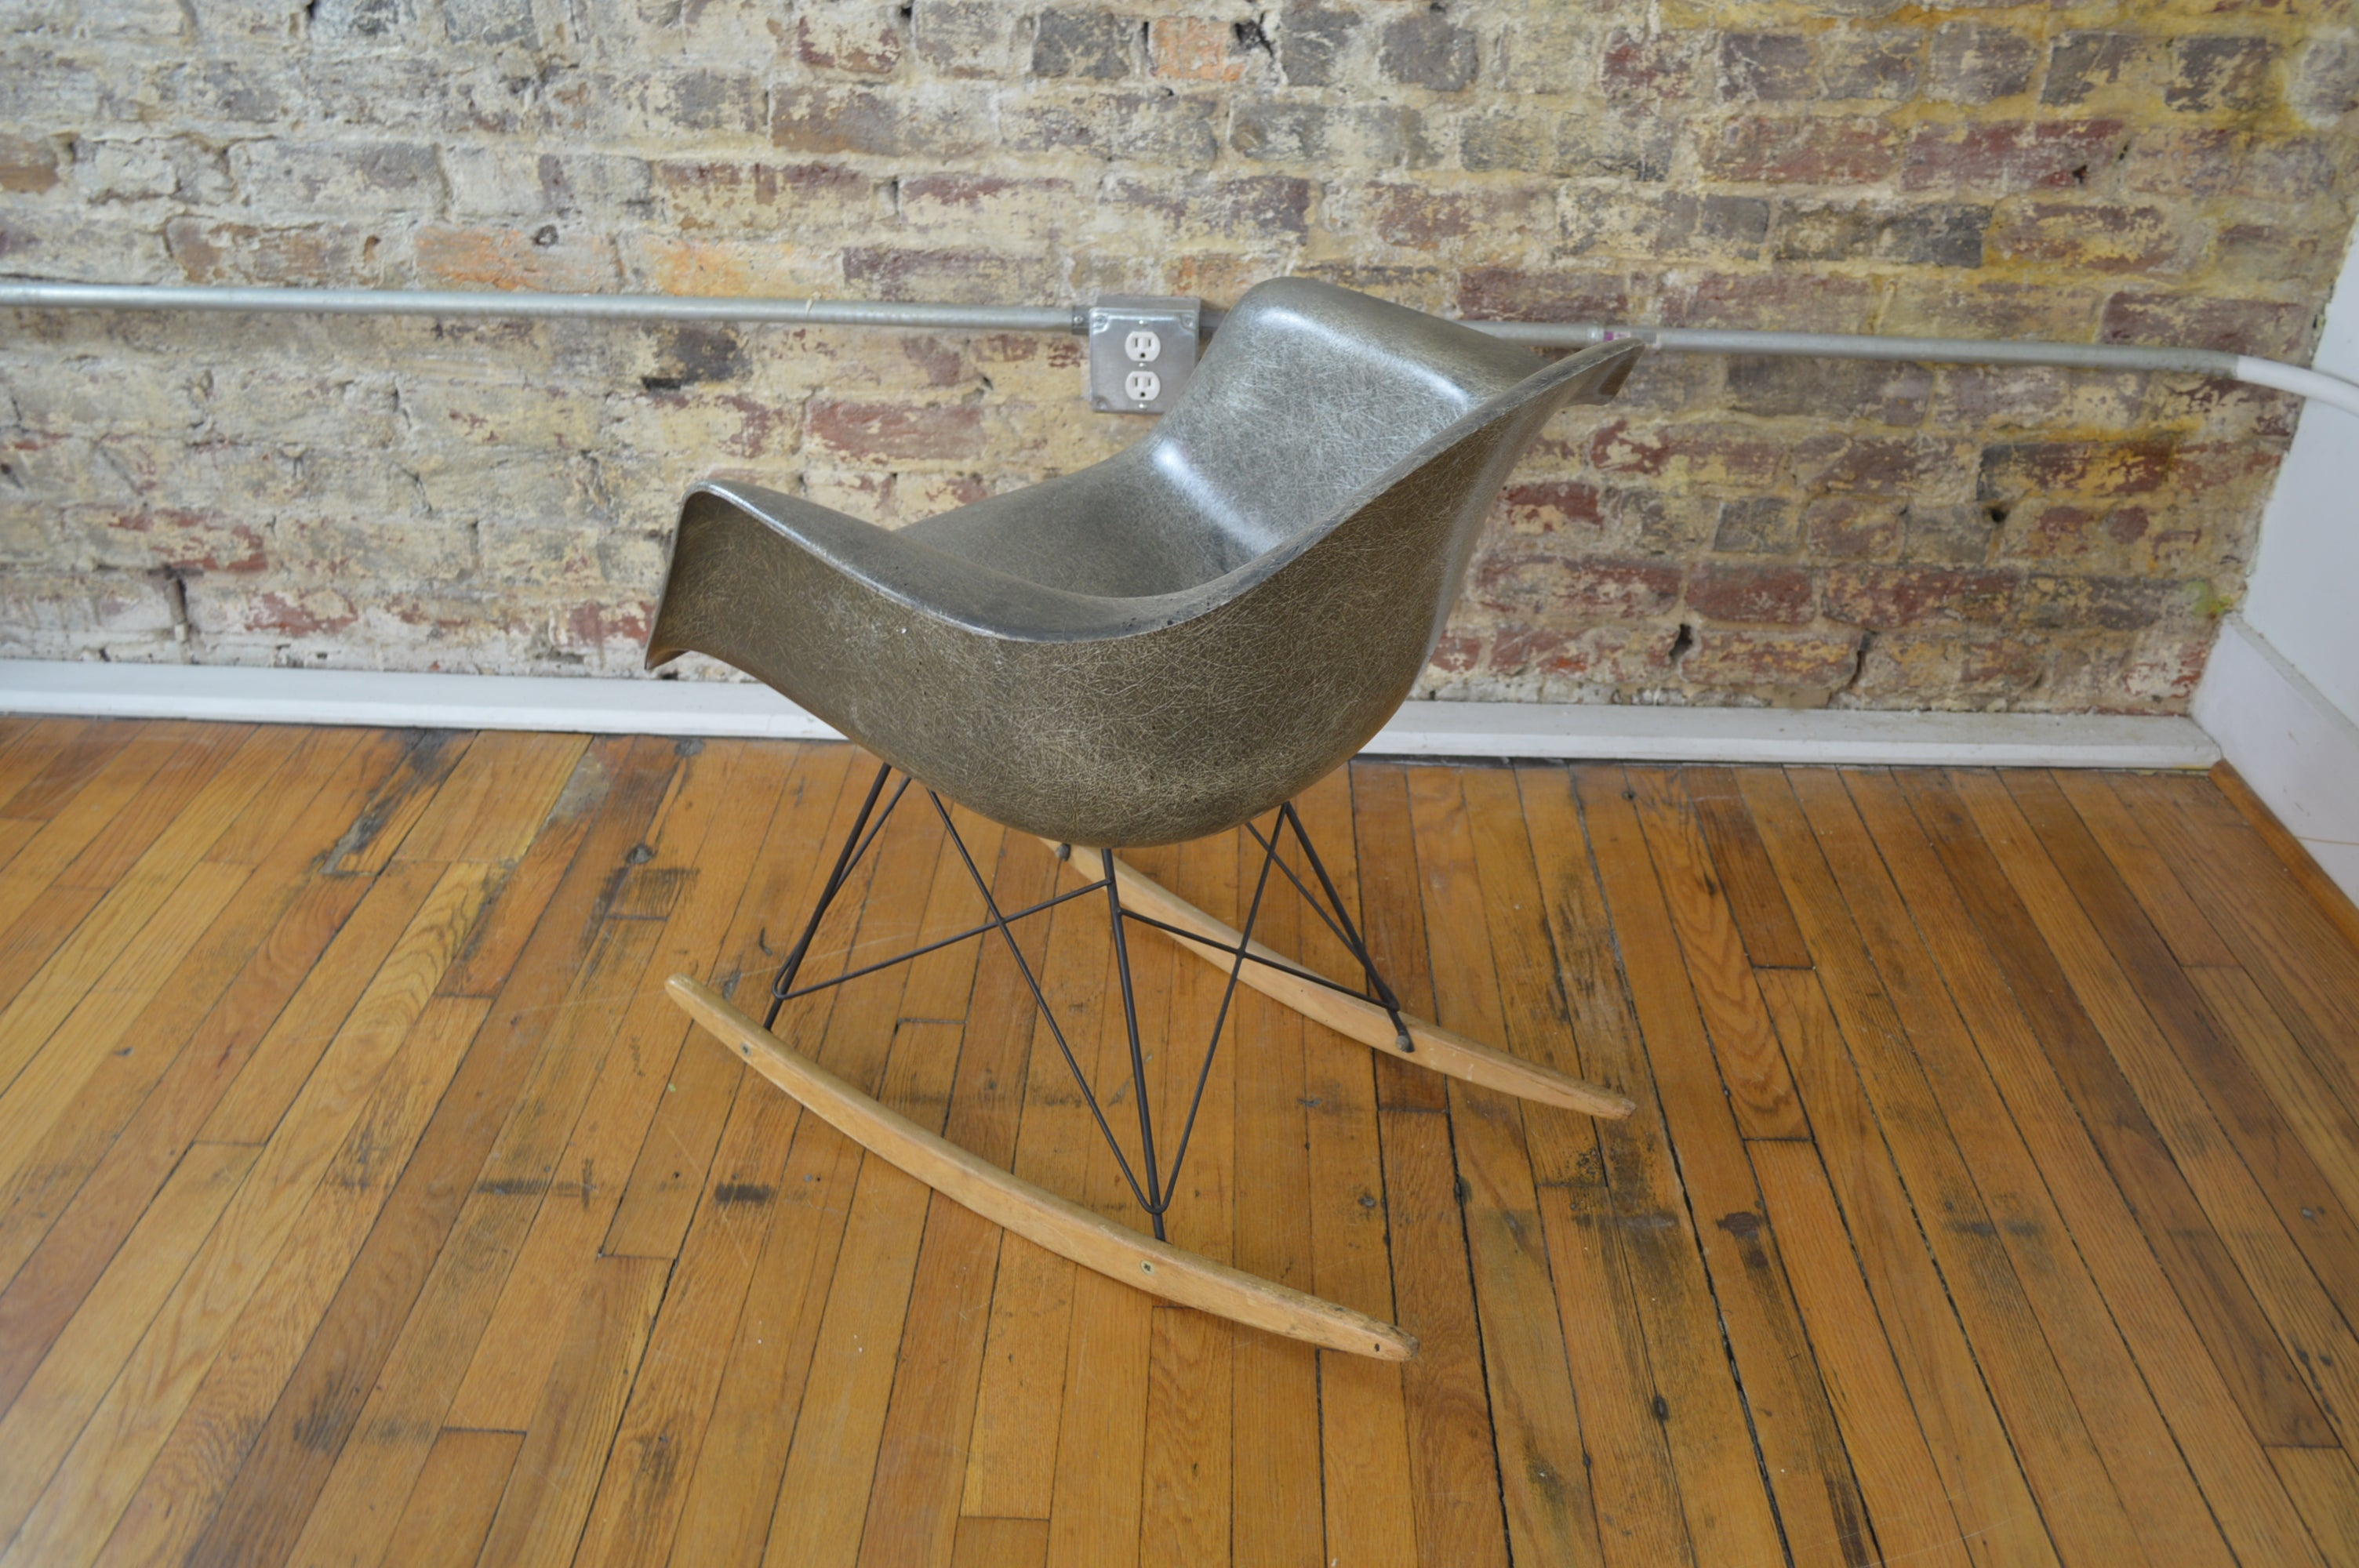 Superb Charles Ray Eames For Herman Miller Mid Century Modern Rocking Chair Creativecarmelina Interior Chair Design Creativecarmelinacom